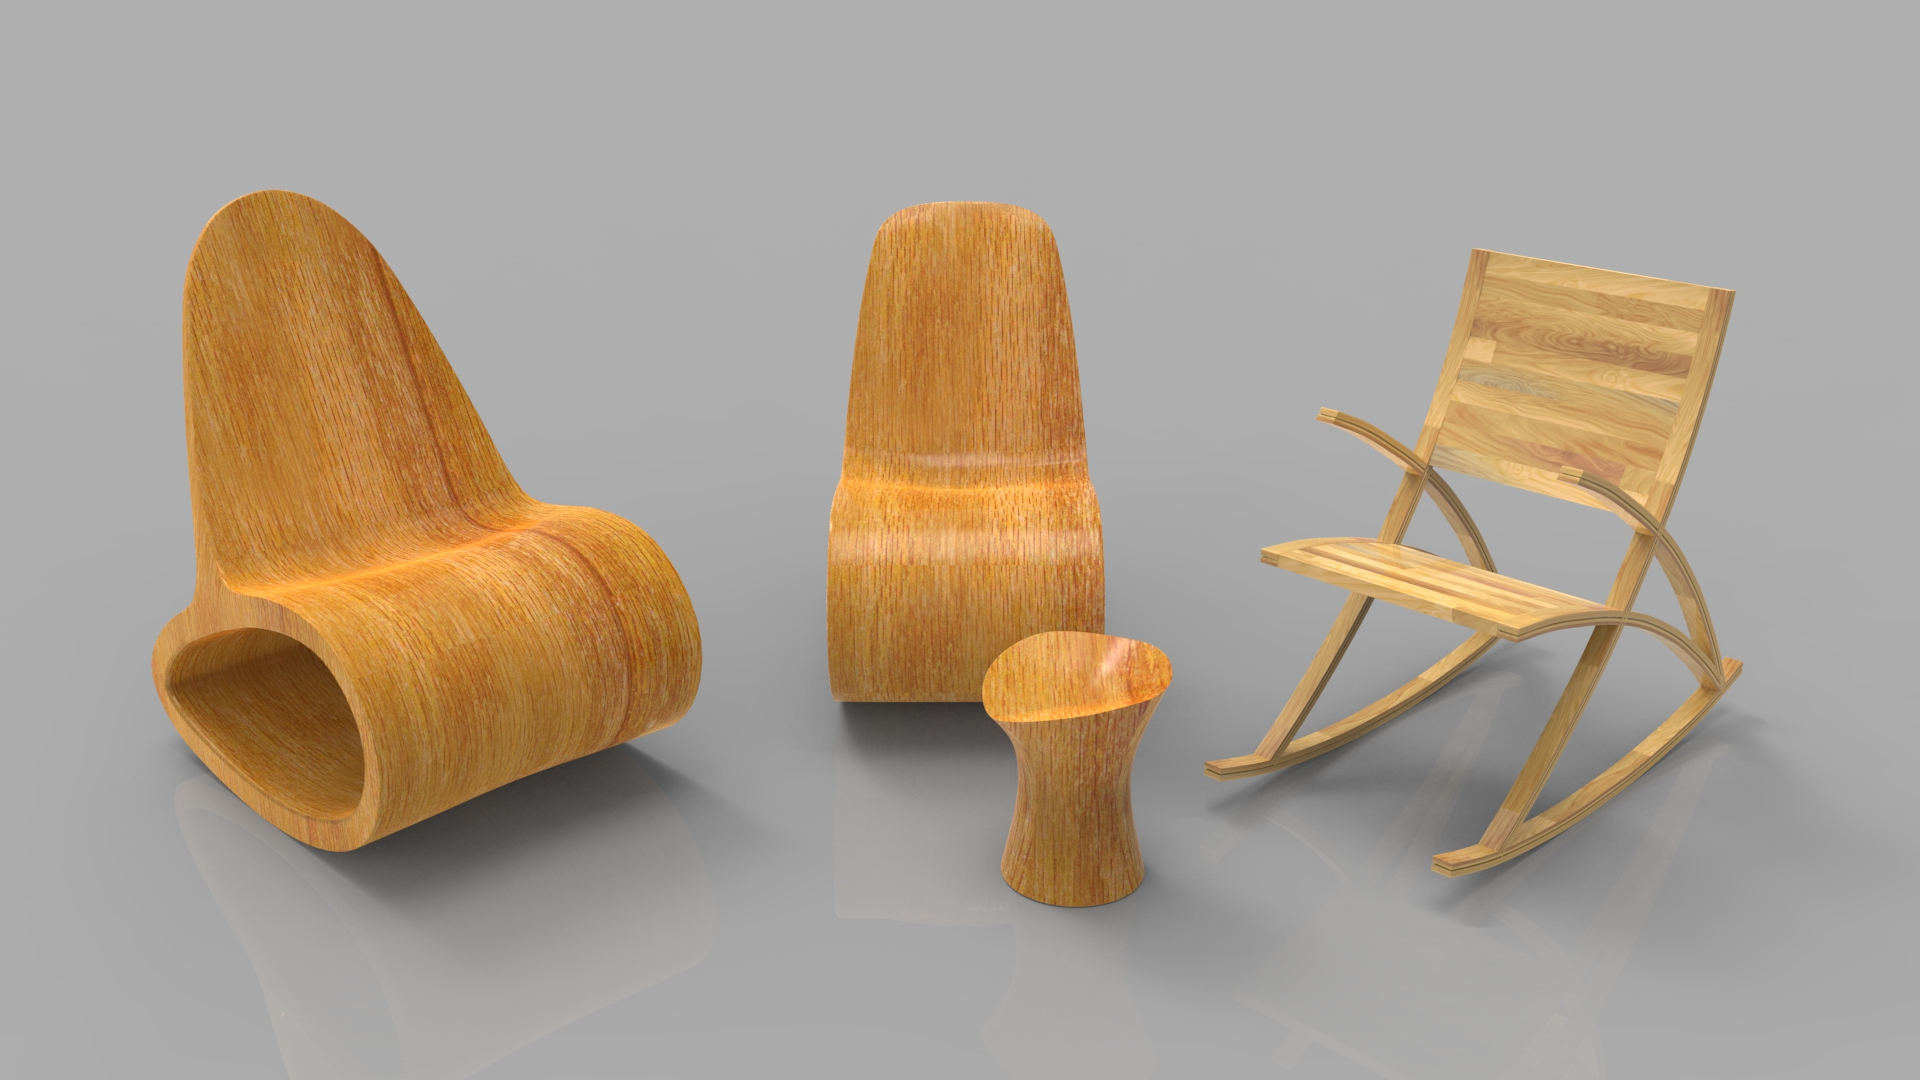 rocking wooden chair collection 3d model max fbx ma mb obj 286168